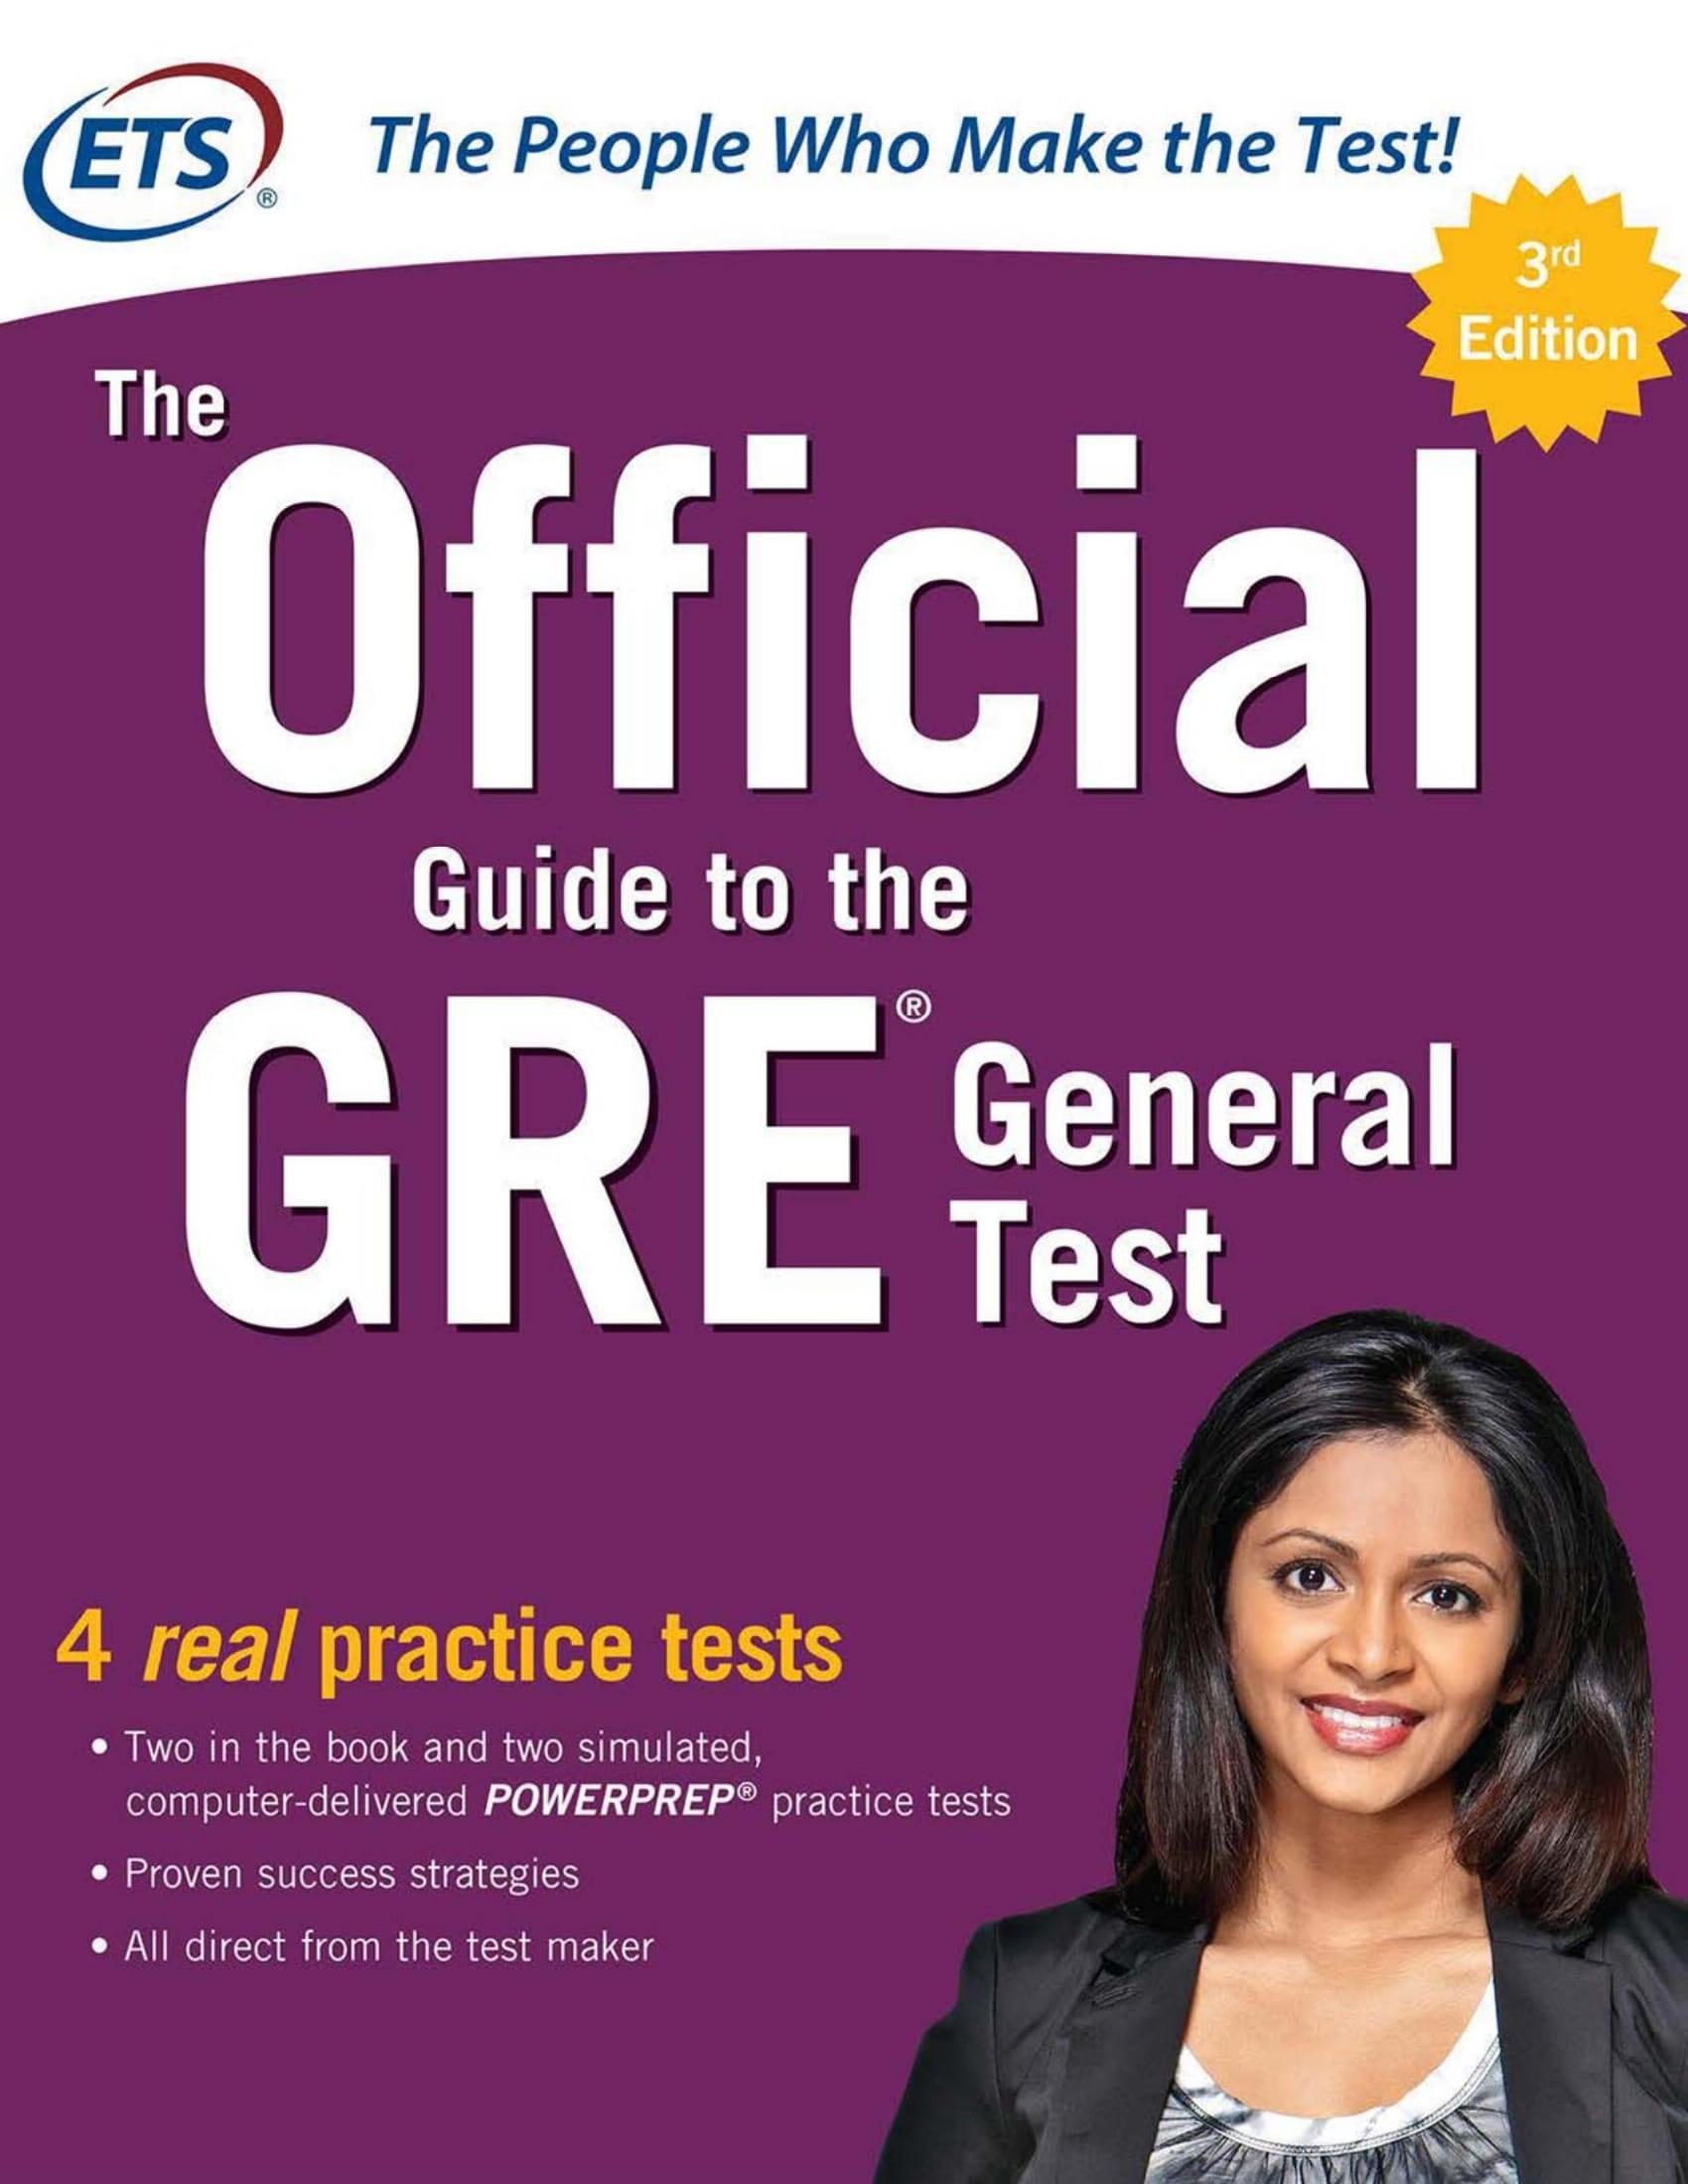 Mua The Official Guide to the GRE General Test, Third Edition